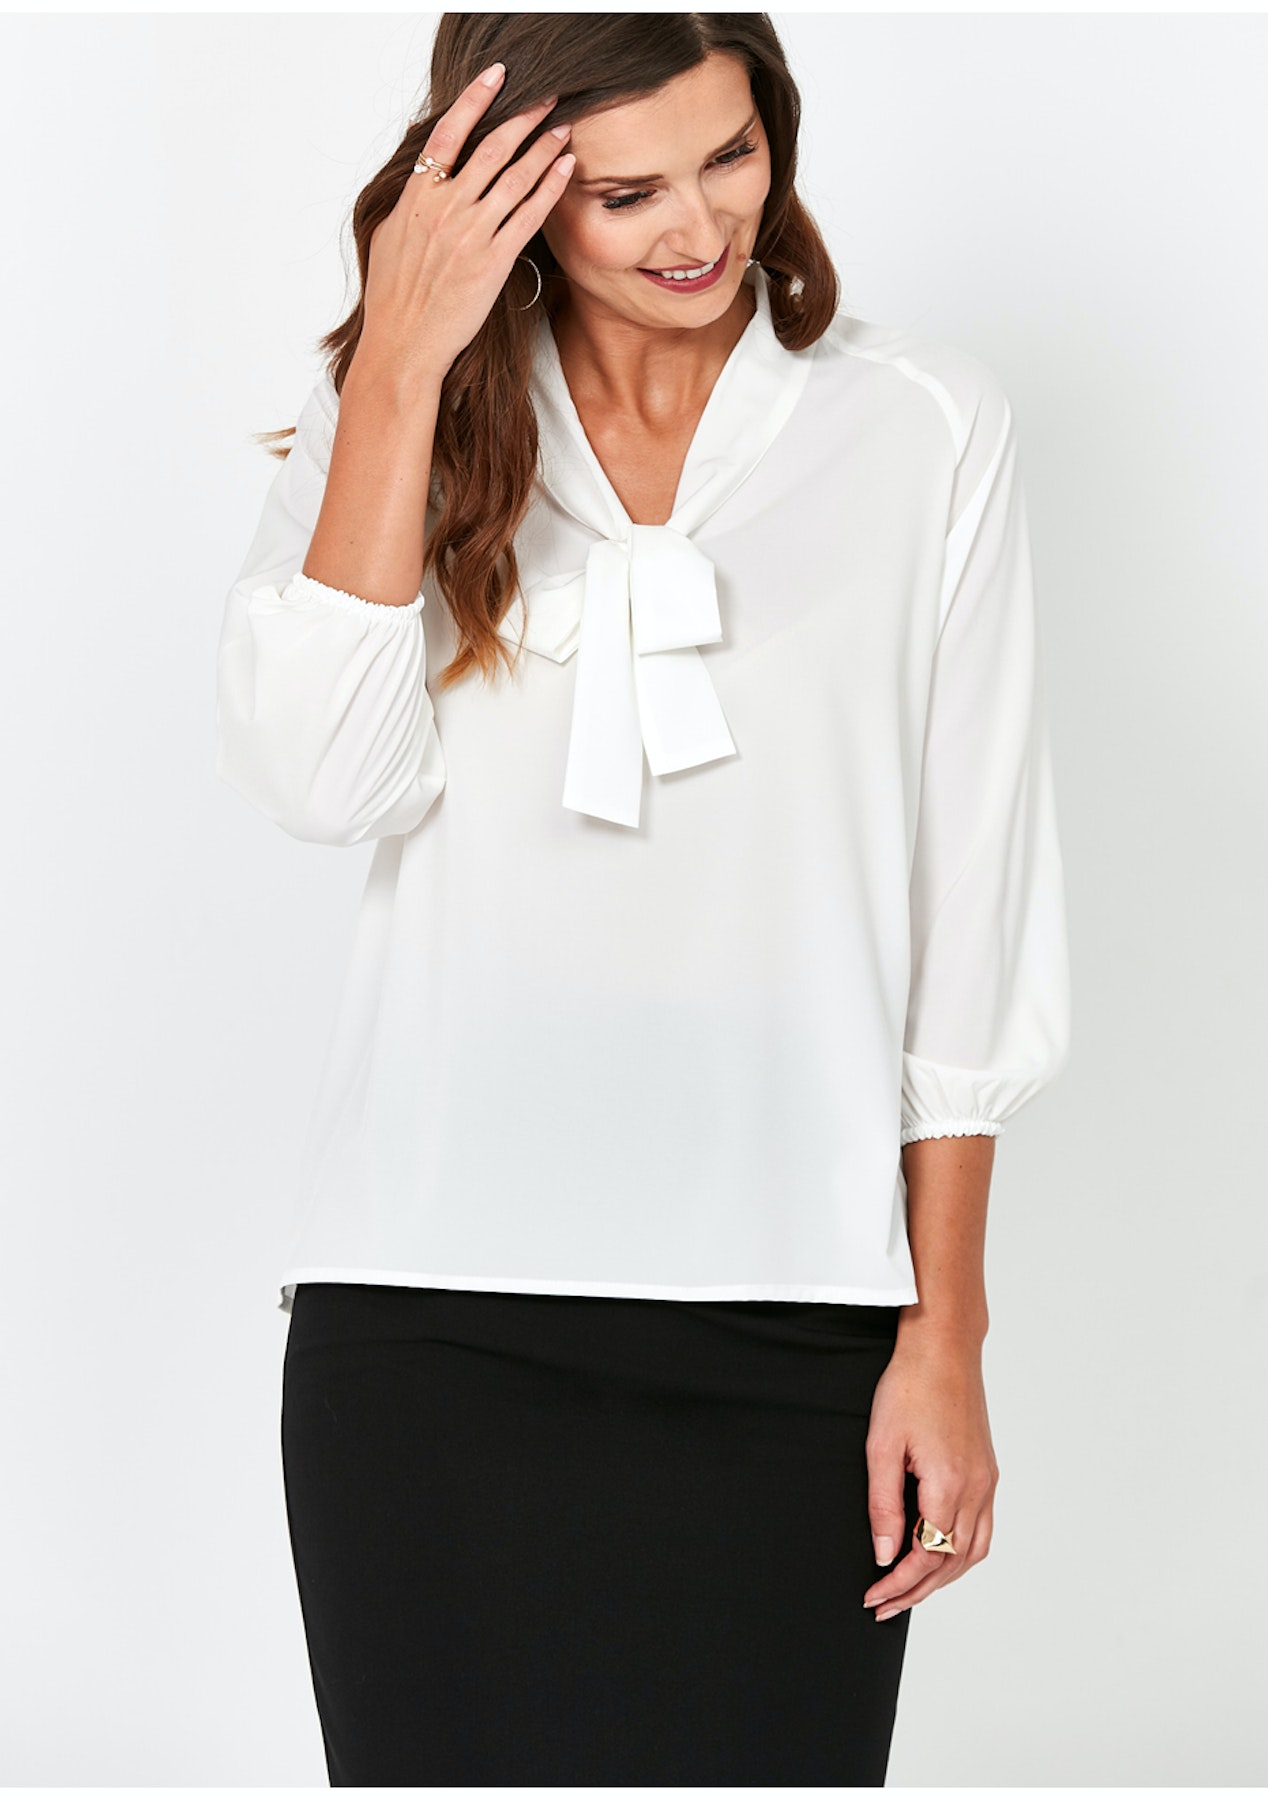 dad52befb96ea9 Zocha - Blouse - Ecru - Day to Night Looks Up to 70% Off - Onceit